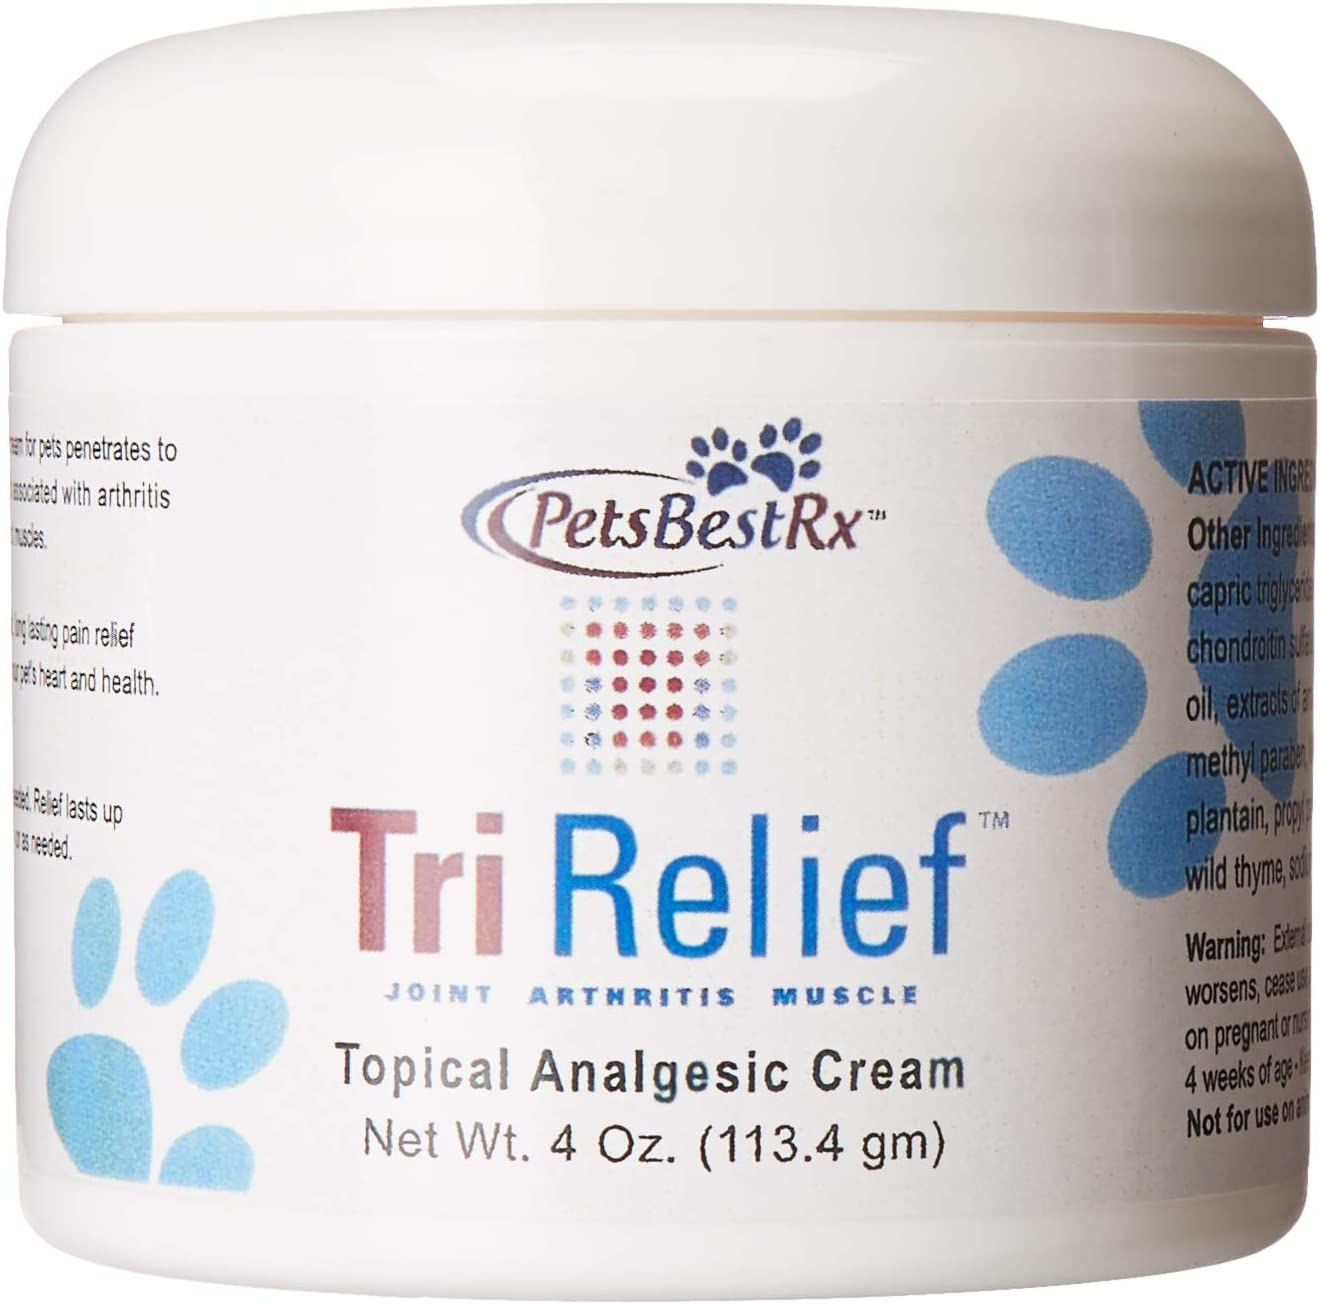 PetsBestRx - Tri Relief Cream for Joint, Muscle and Arthritis Pain in Dogs and Cats - 4 Ounces